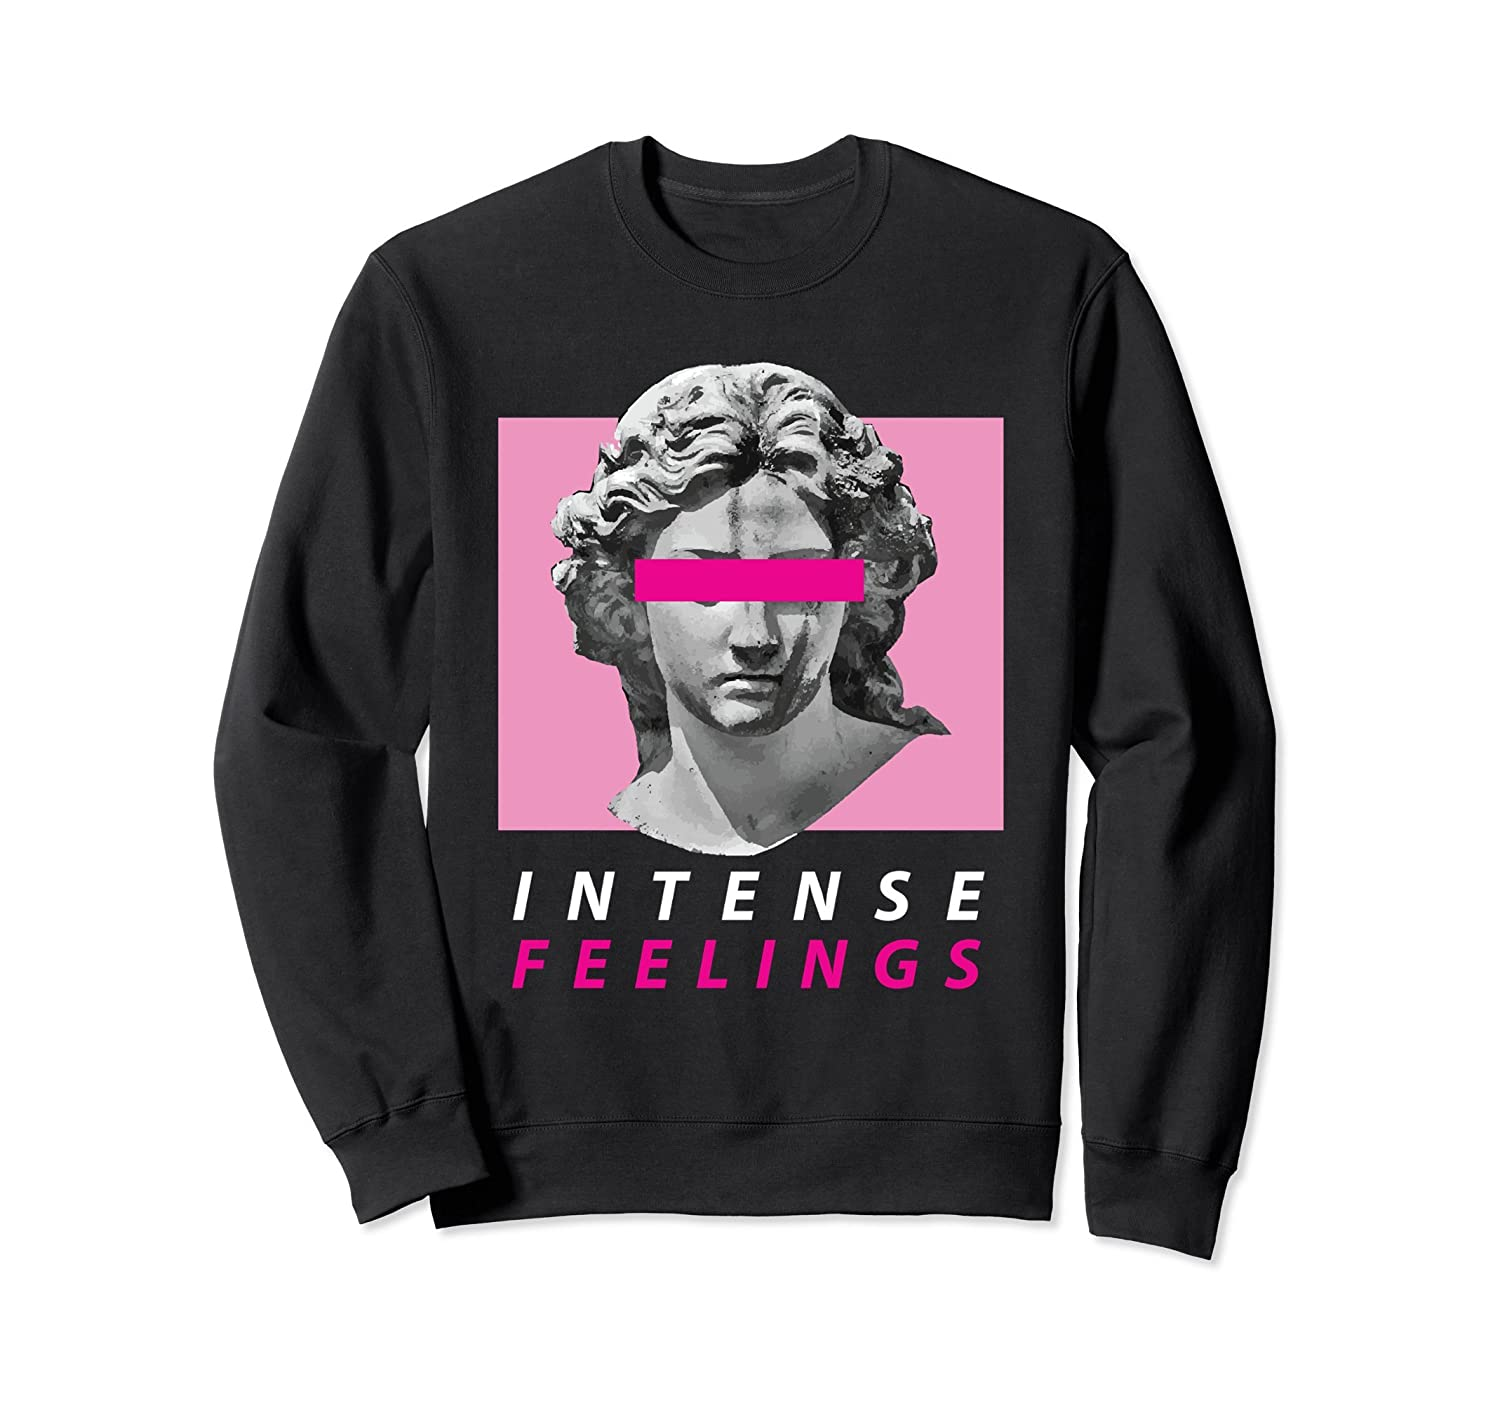 Aesthetic Vaporwave Sweatshirt Retro 1980s 1990s Otaku-TH